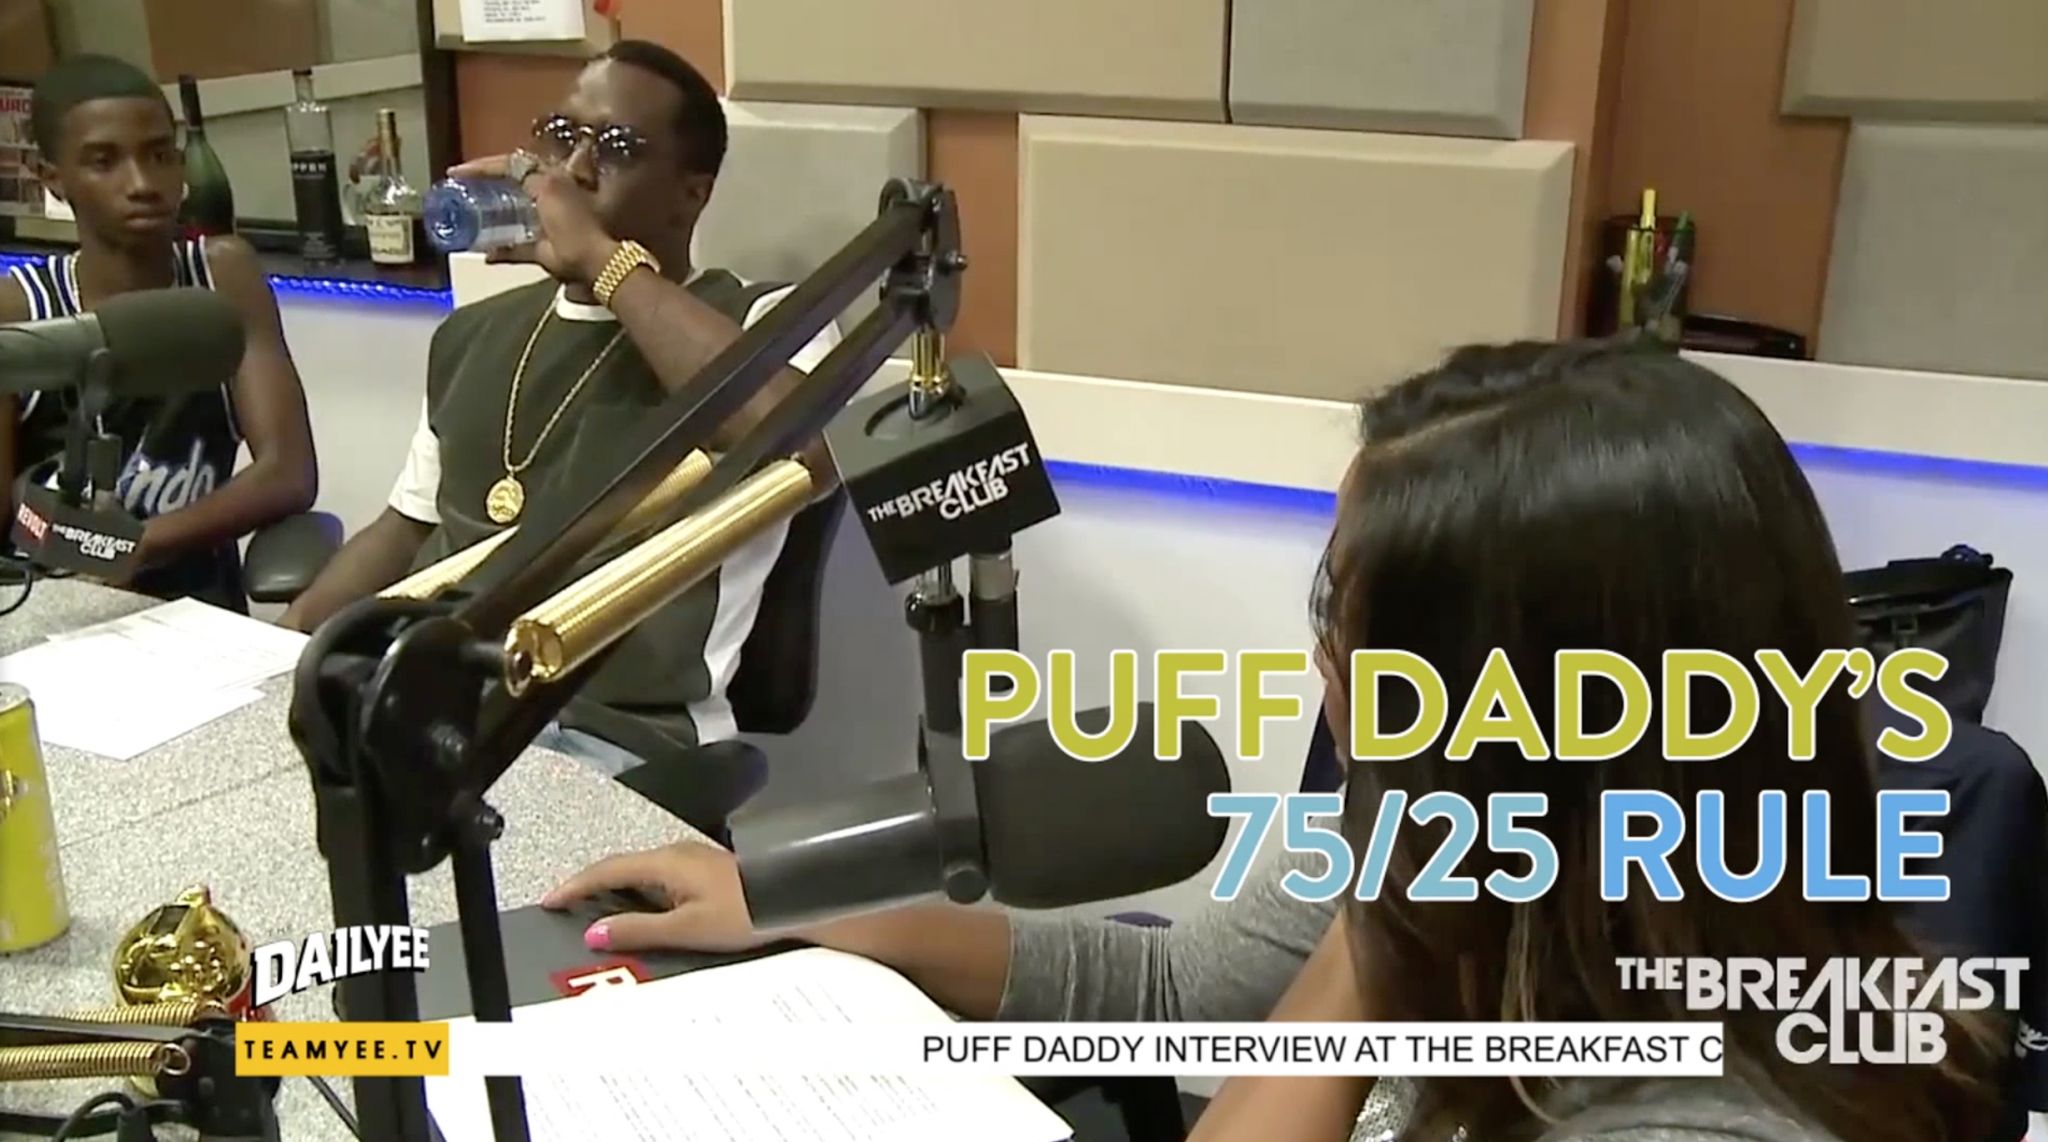 Puff Daddy's 75/25 Relationship Rule